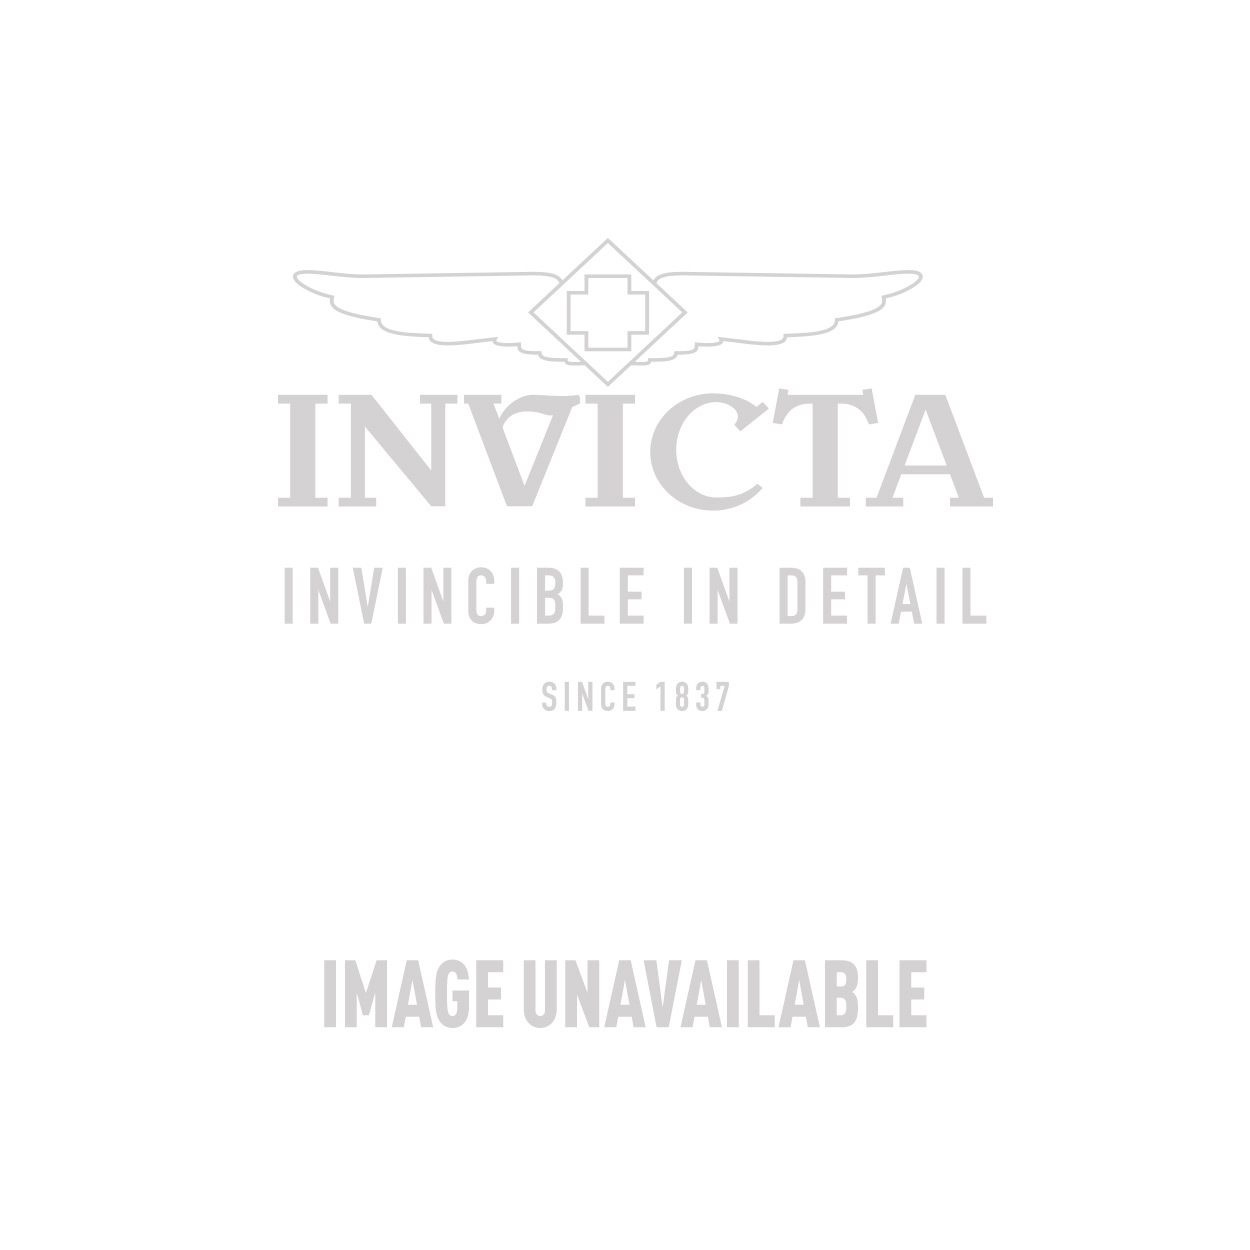 Invicta I-Force Quartz Watch - Black case with Black tone Stainless Steel band - Model 90063